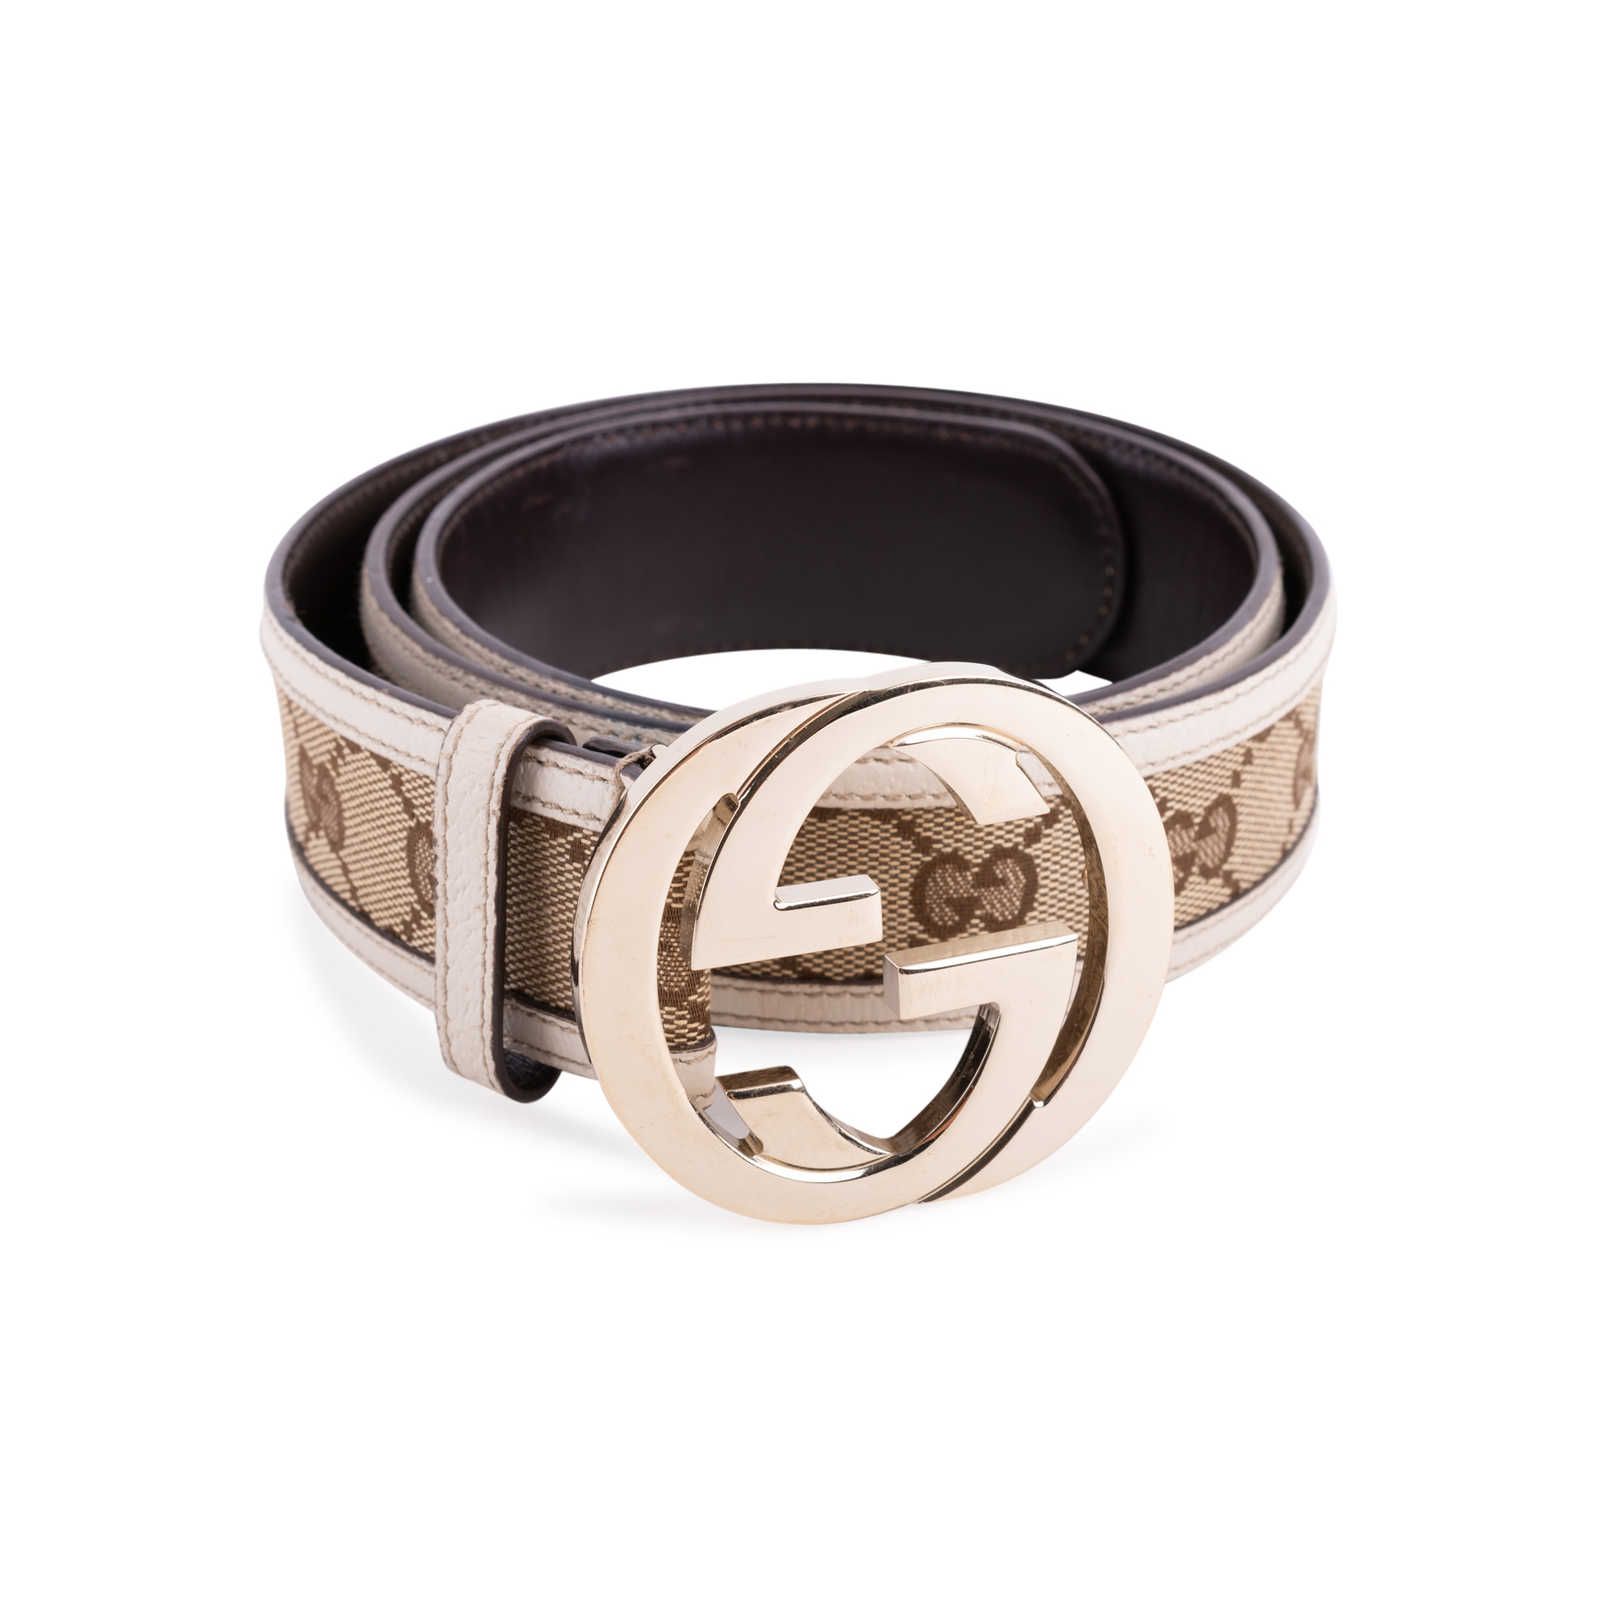 8b5365694 ... Authentic Second Hand Gucci Monogram Leather Belt (PSS-647-00006) -  Thumbnail ...